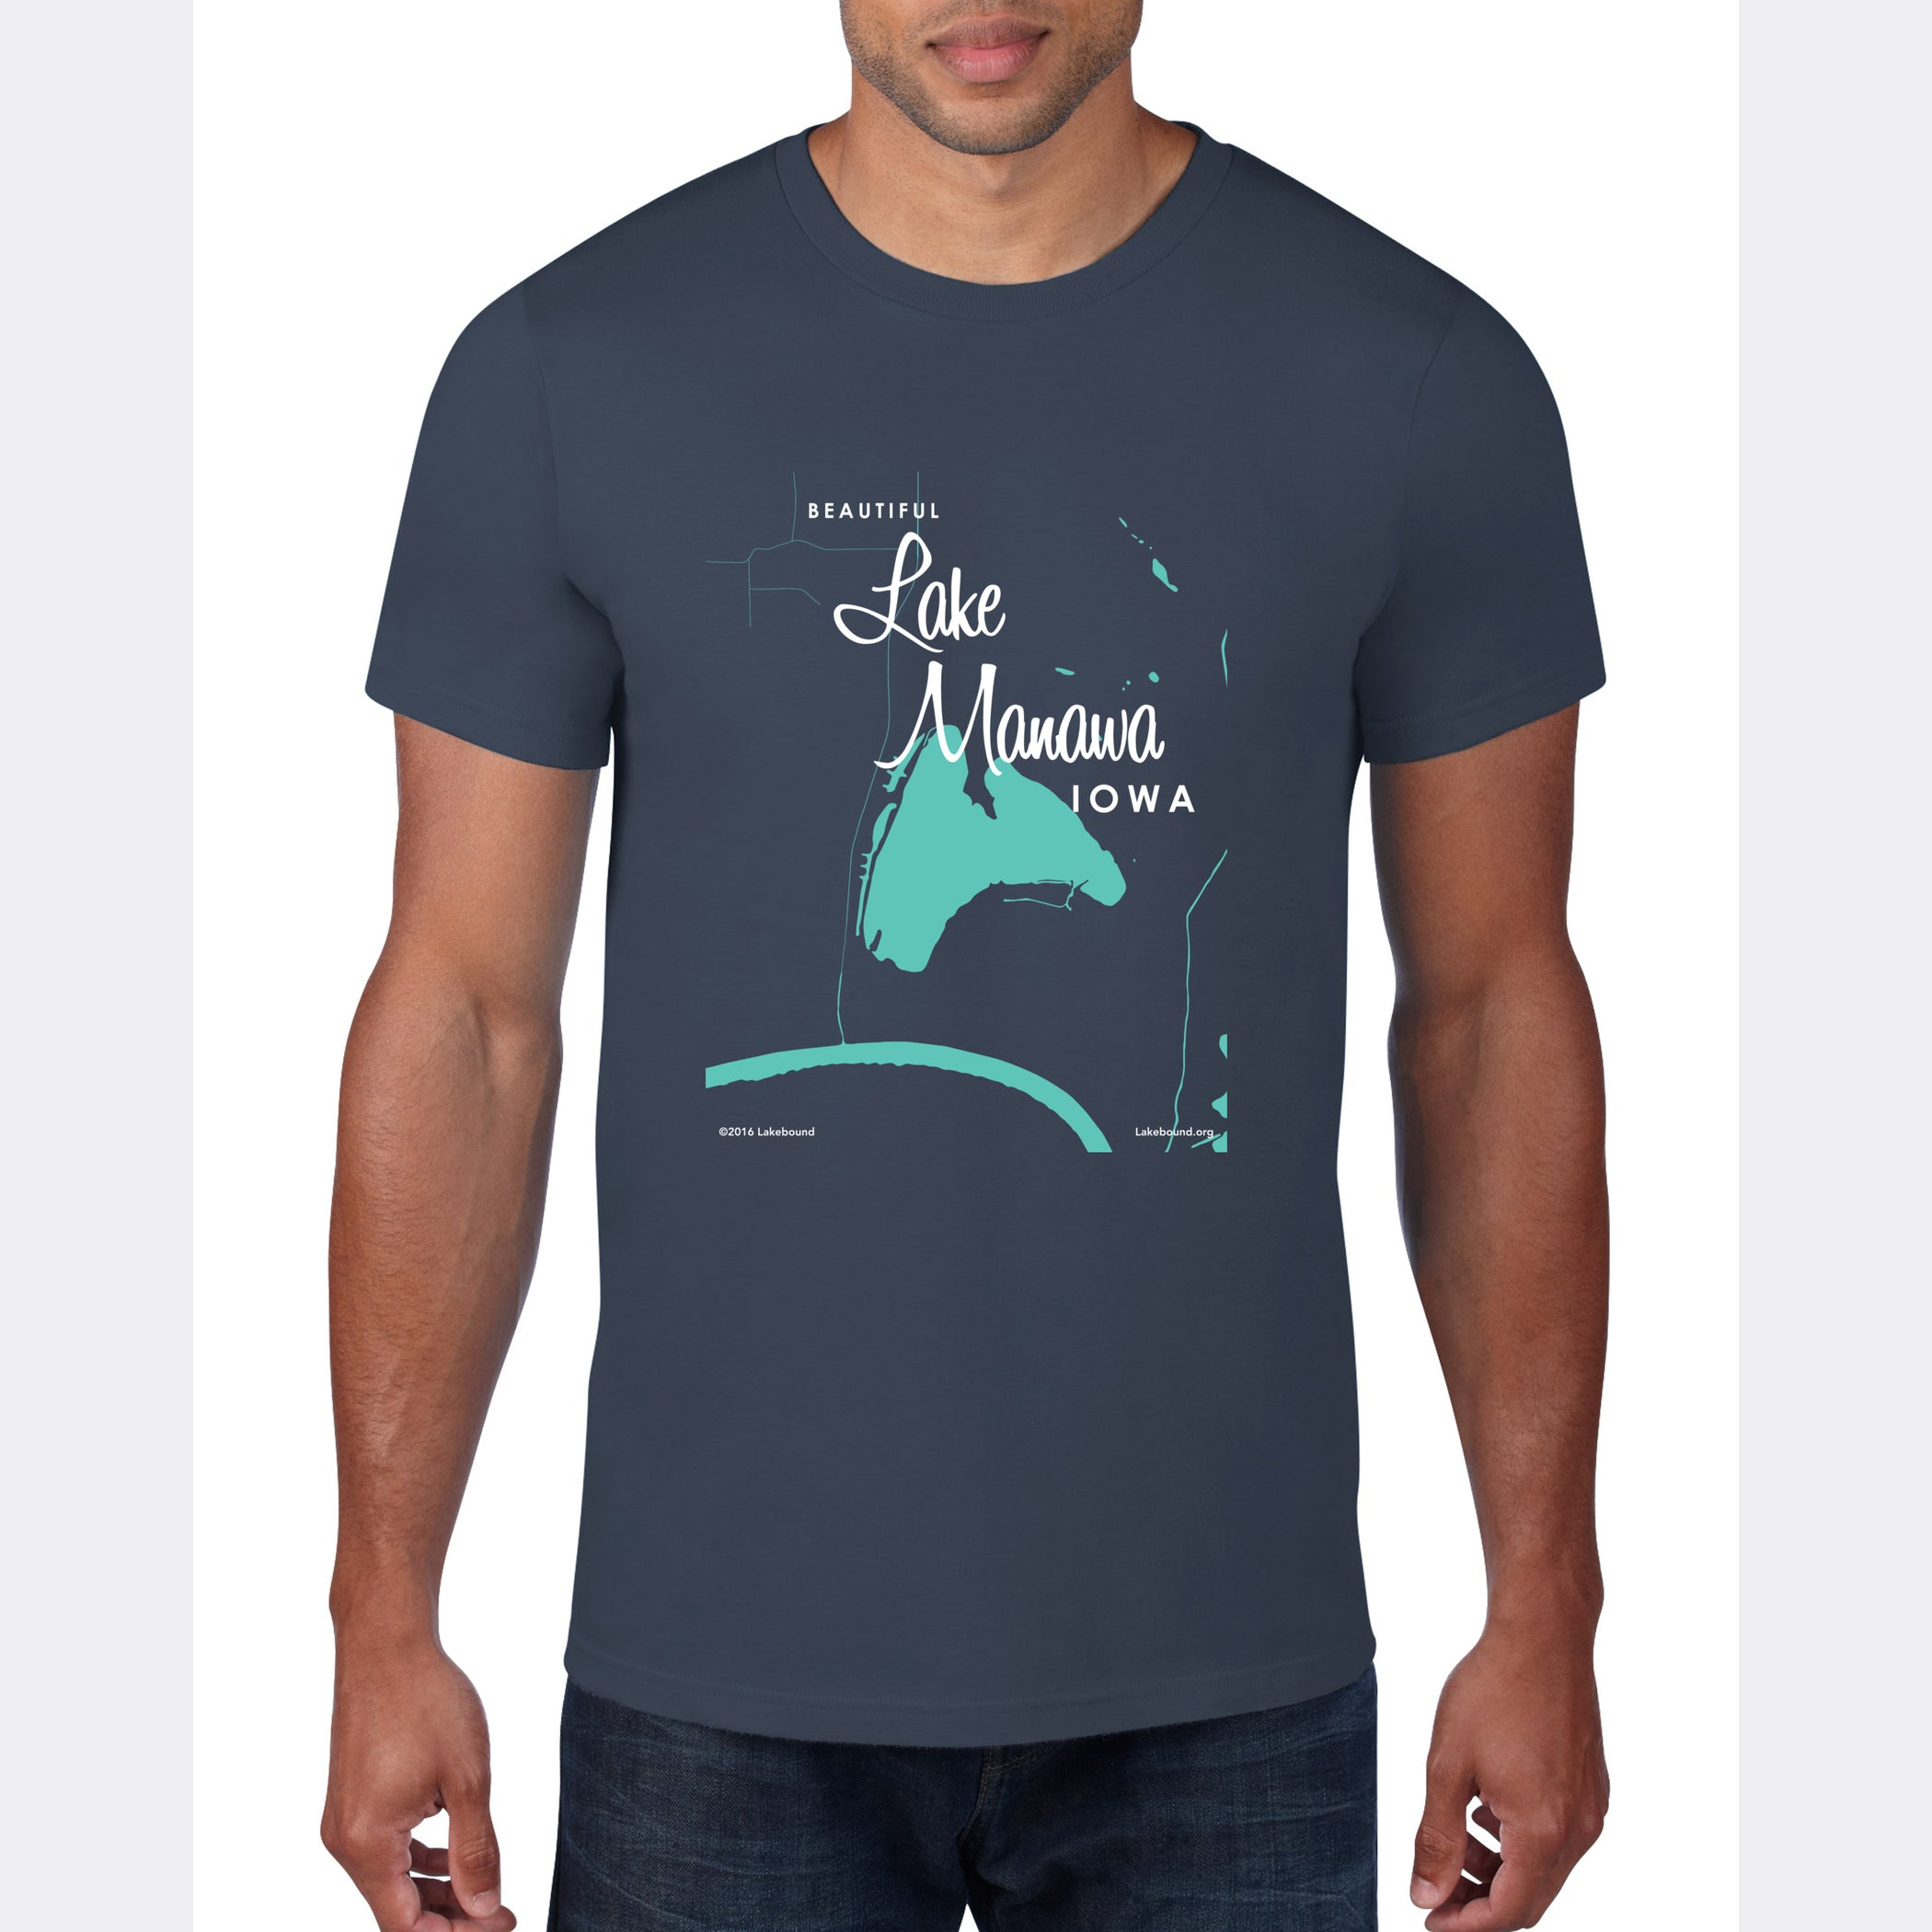 Lake Manawa Iowa, T-Shirt